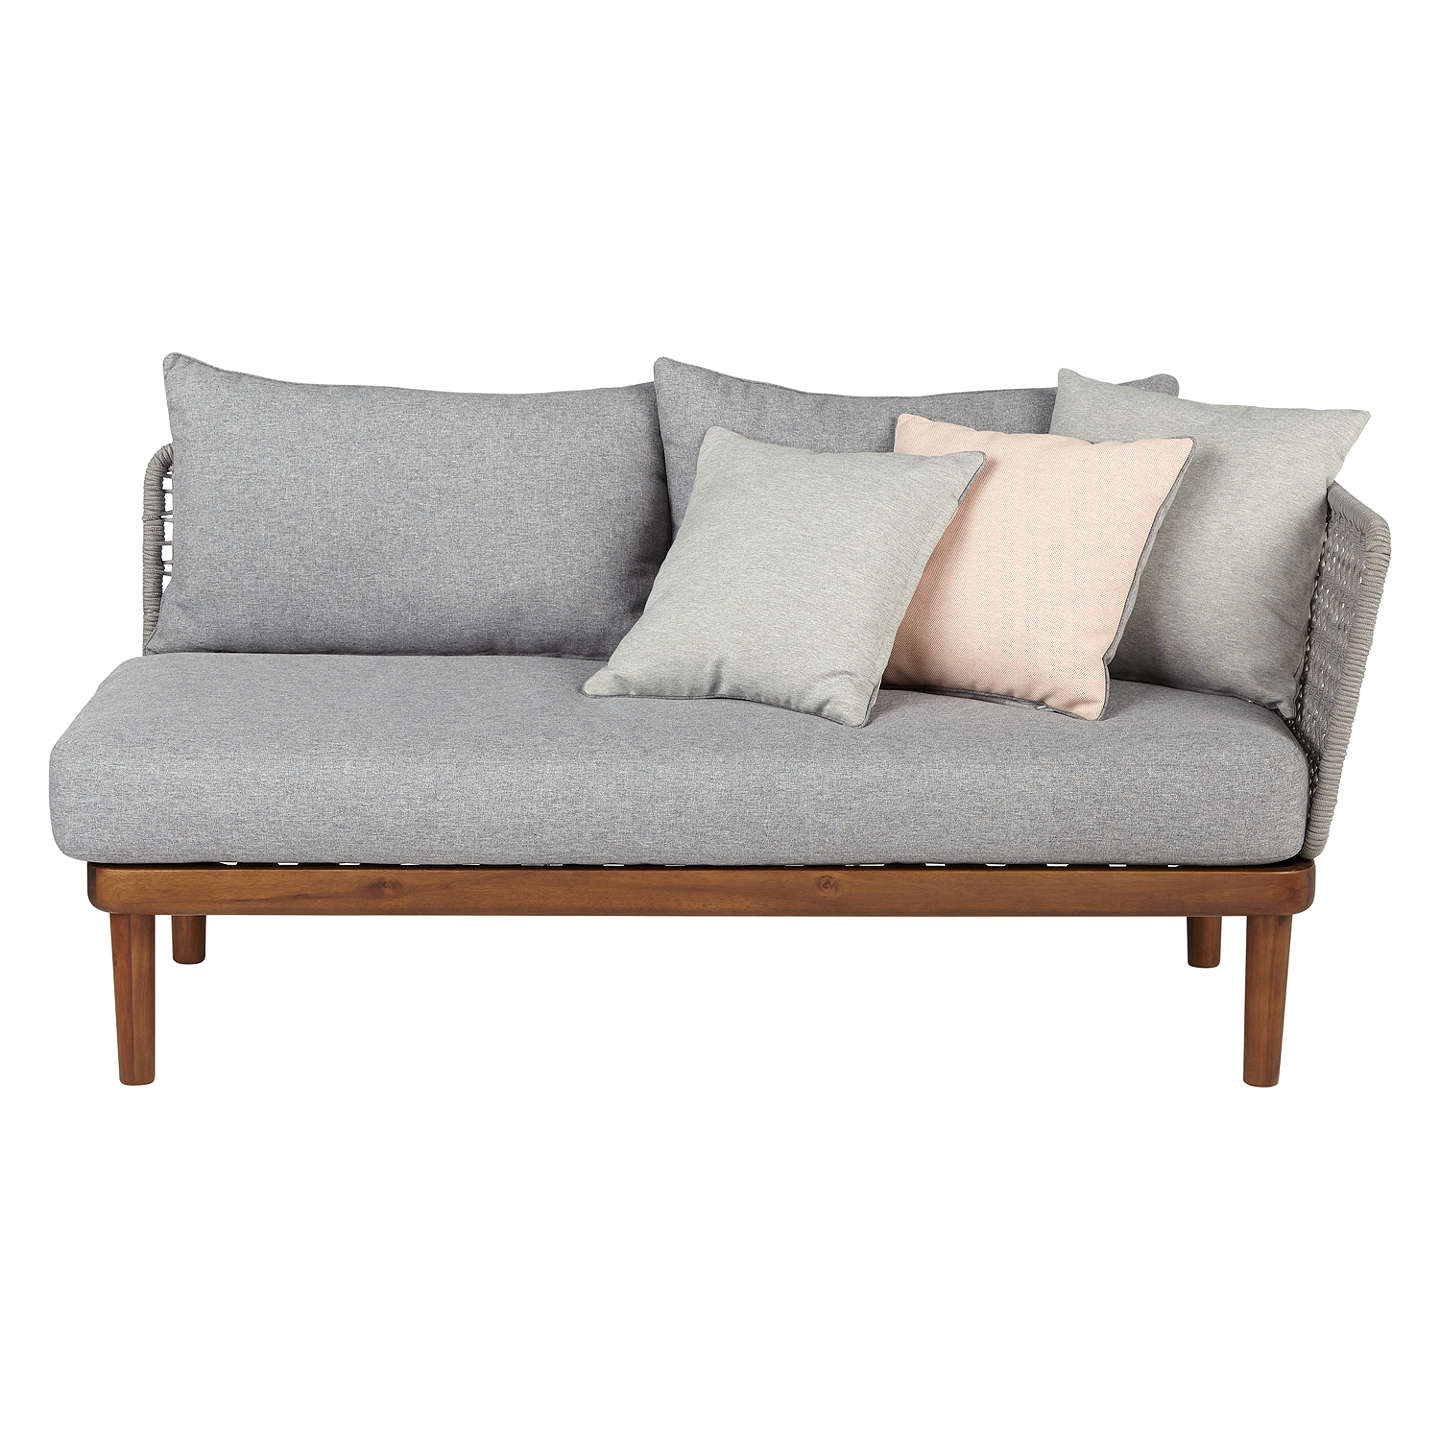 Genial ... BuyDesign Project By John Lewis No.096 Lounging One Arm Sofa,  FSC Certified ...